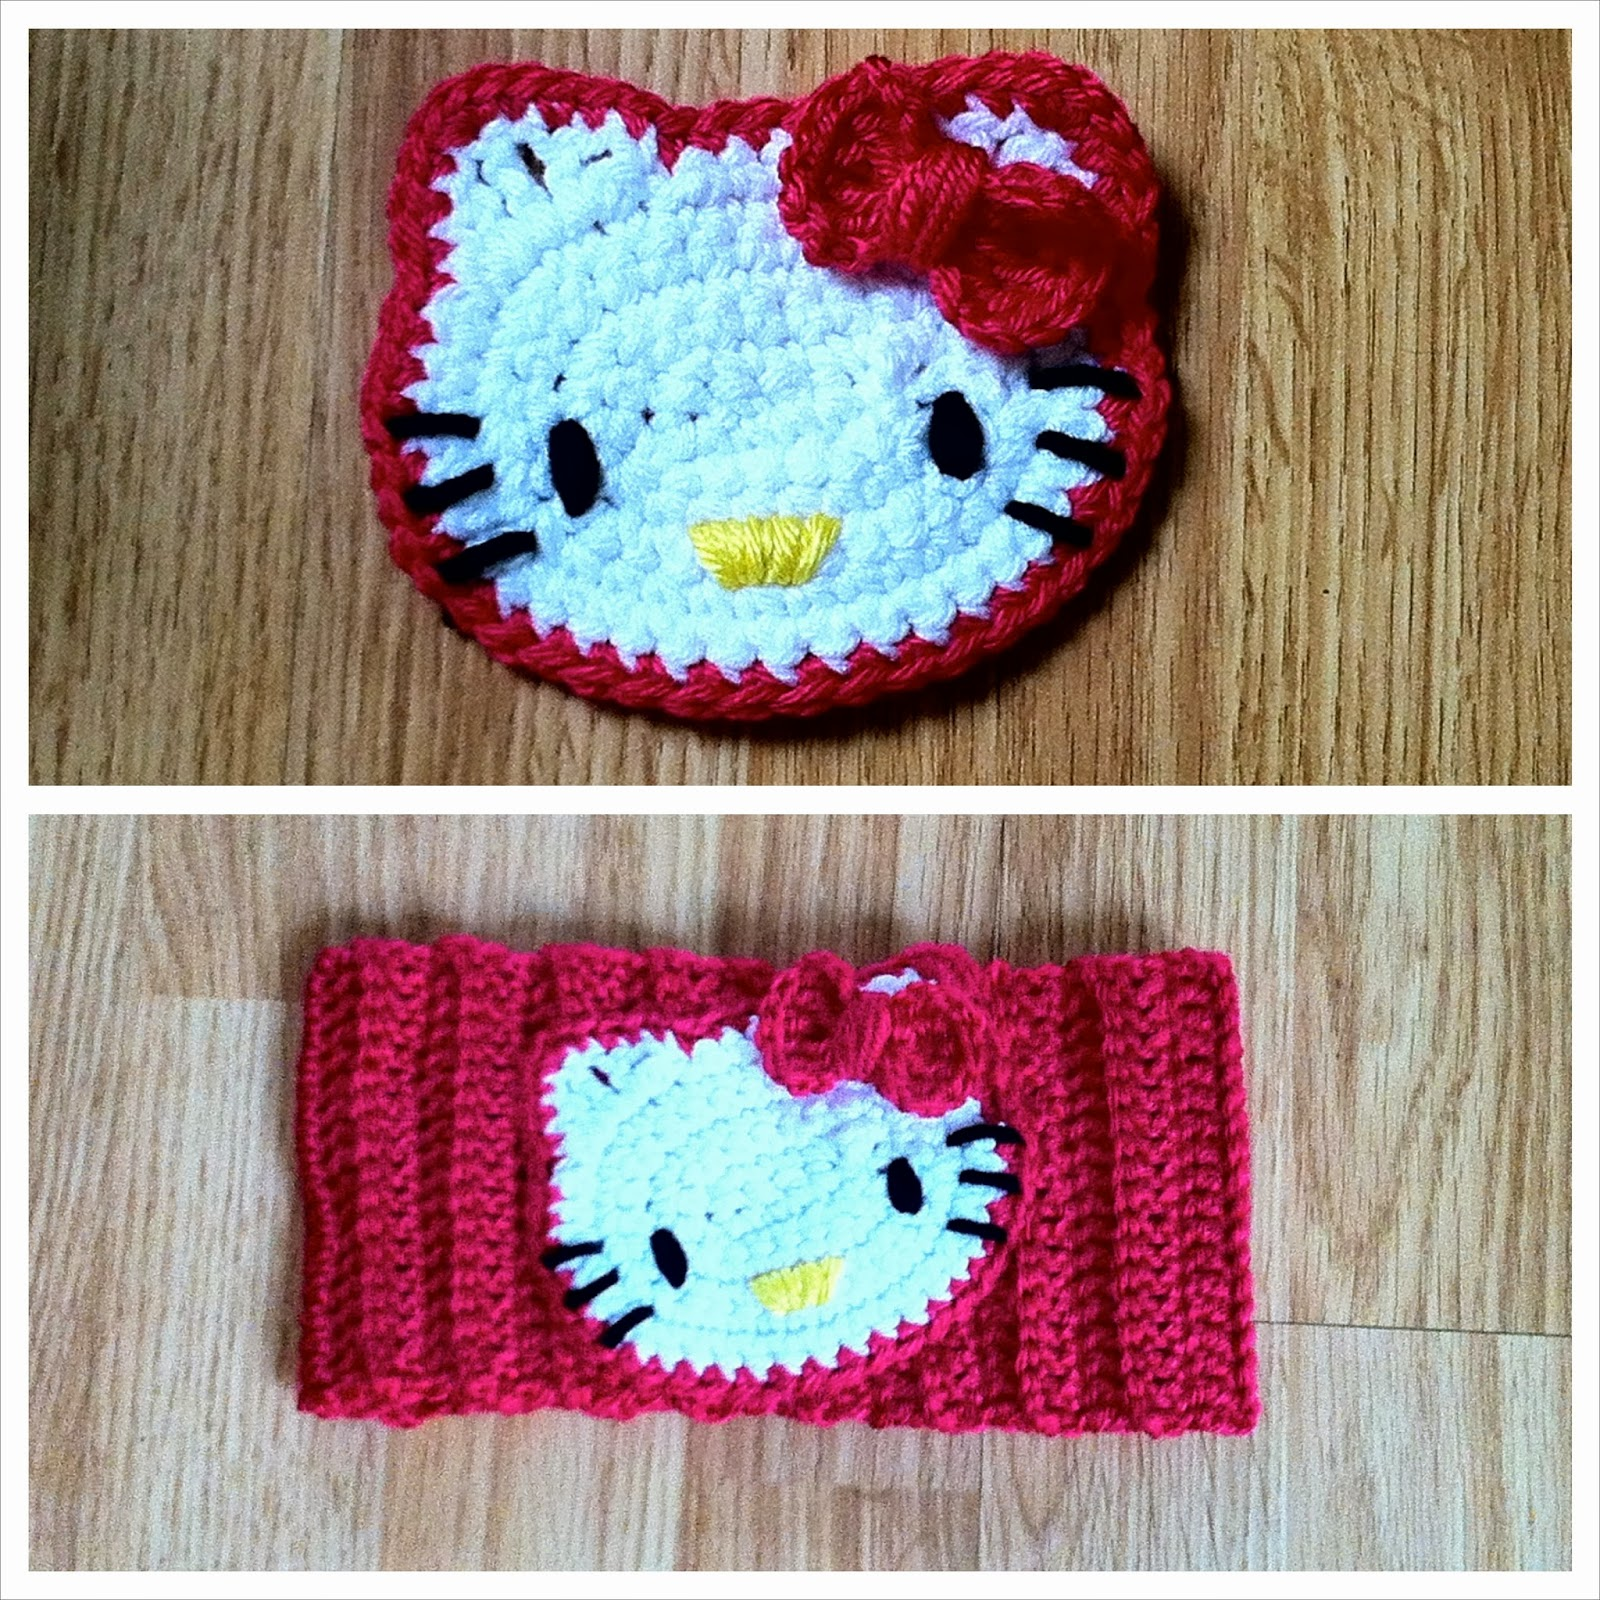 Free Pattern Crochet Hello Kitty : The Way I Crochet: Hello Kitty Crochet Headband